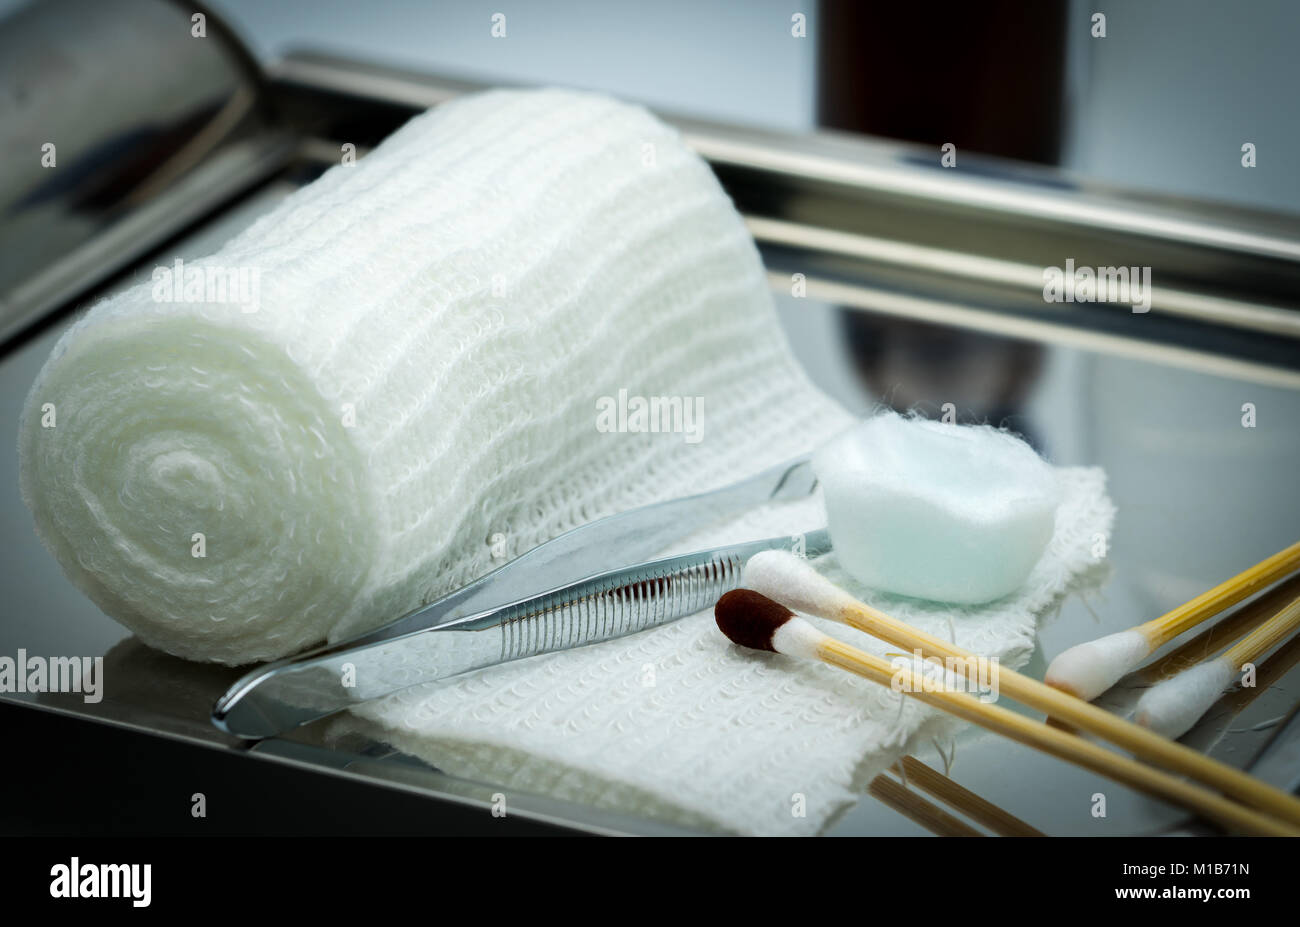 Wound care dressing set on stainless steel plate. Cotton ball with alcohol, cotton stick with povidone-iodine, forceps - Stock Image